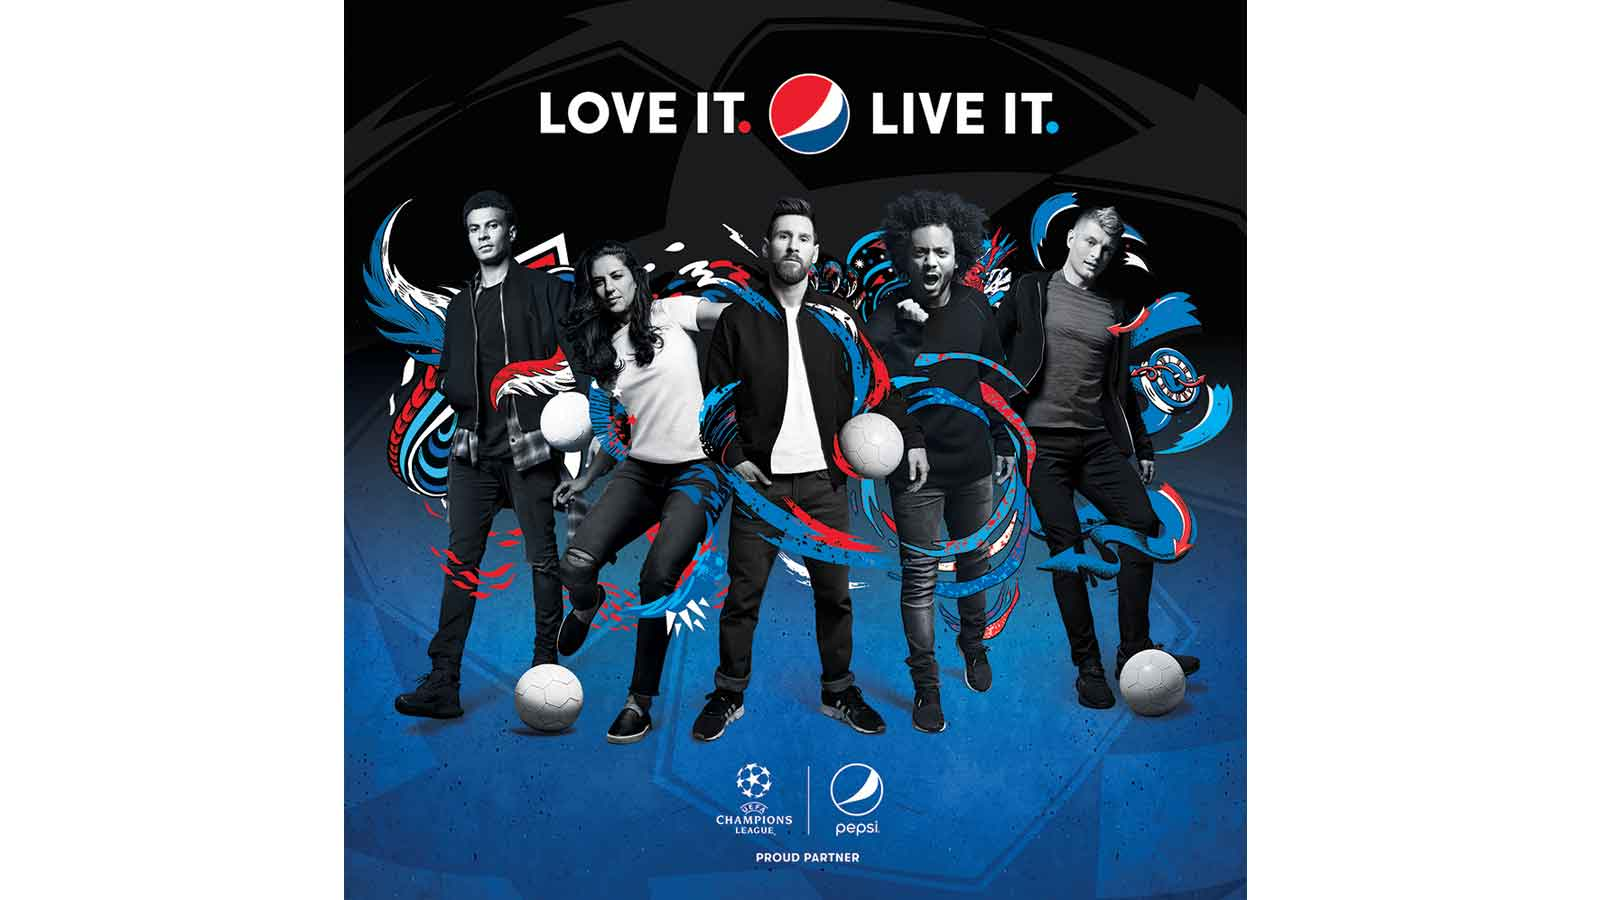 Painting the world blue: Pepsi loves and lives football with global 2018 campaign